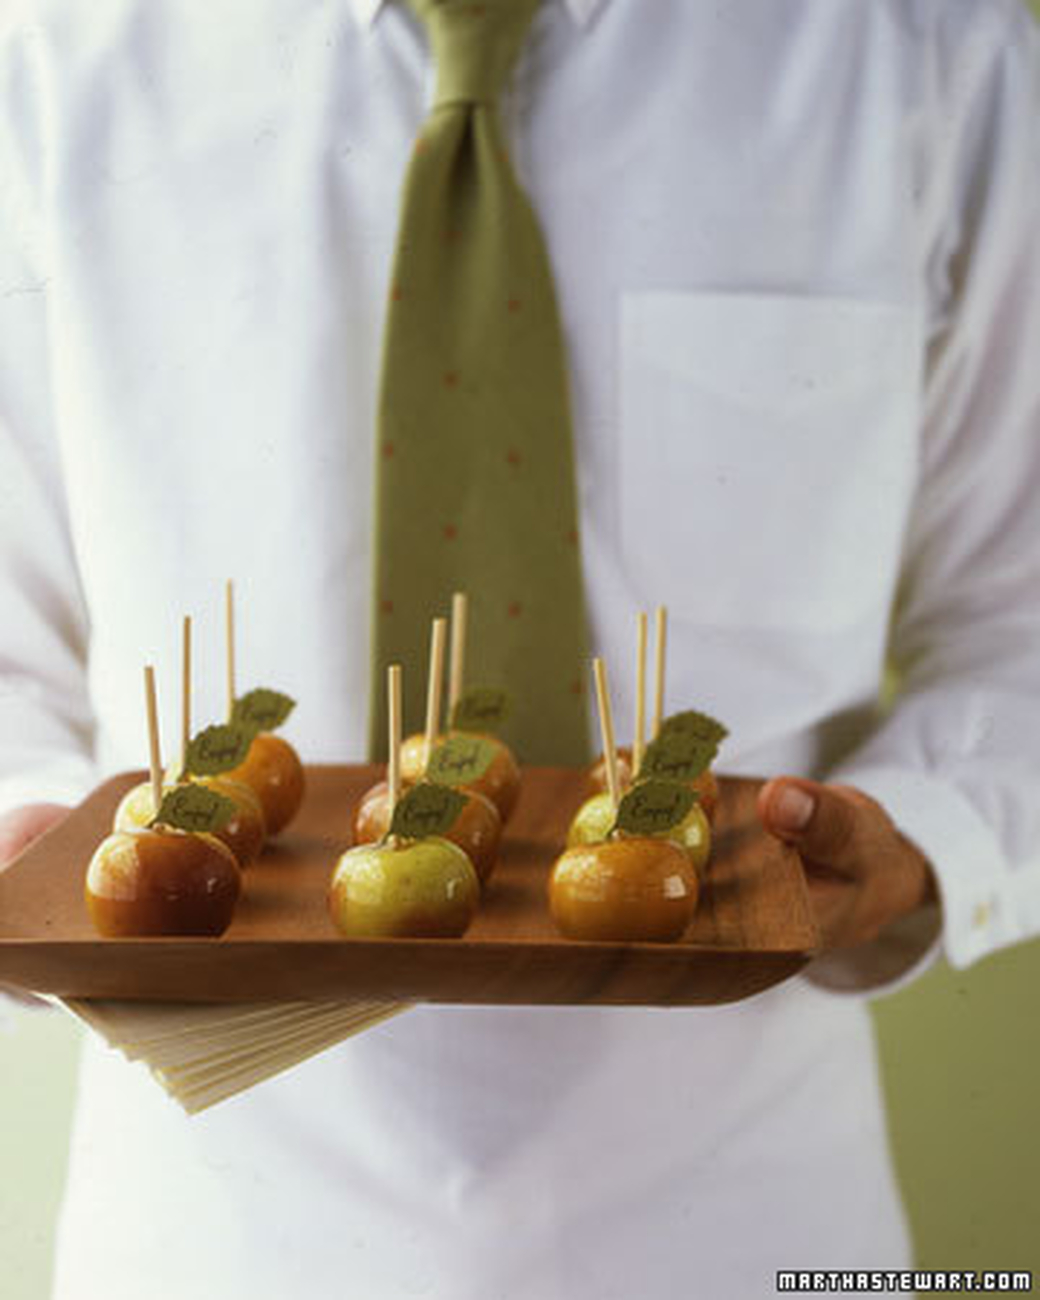 Miniature tart caramel apples  are another great add to your cocktail hour.